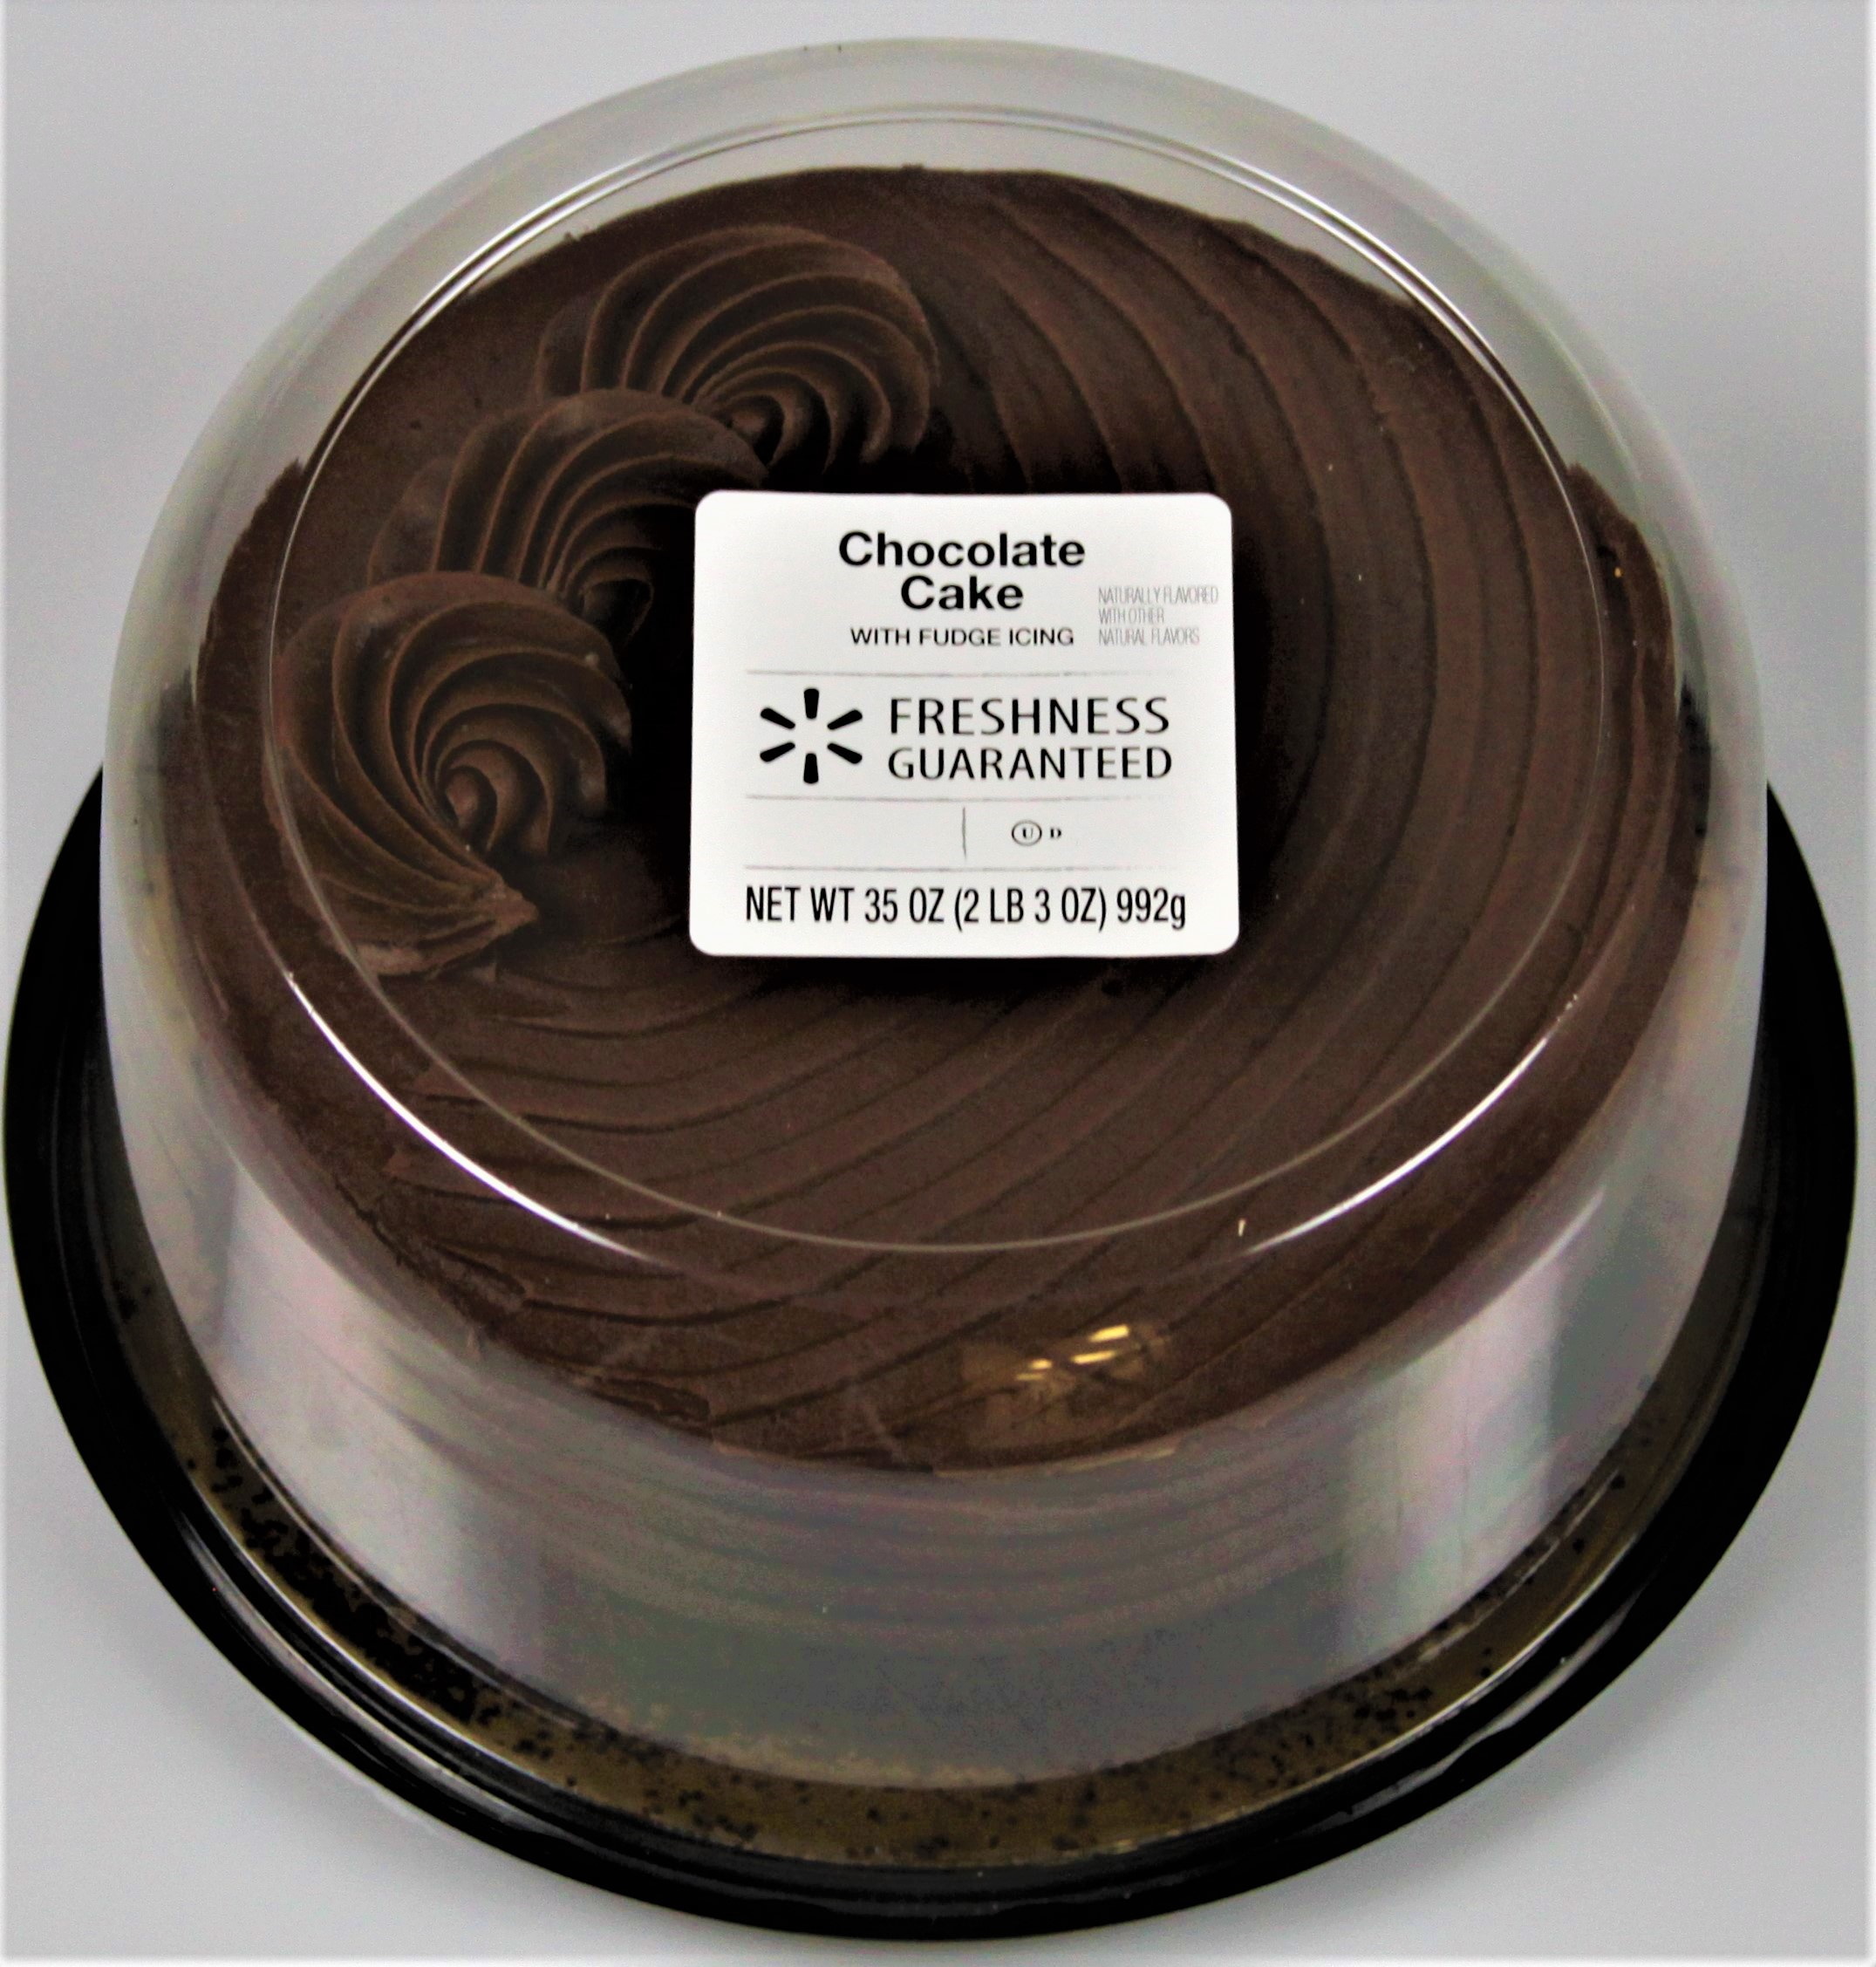 "The Bakery at Walmart 7"" Chocolate Cake With Fudge Icing & Chocolate Shavings, 35 oz"